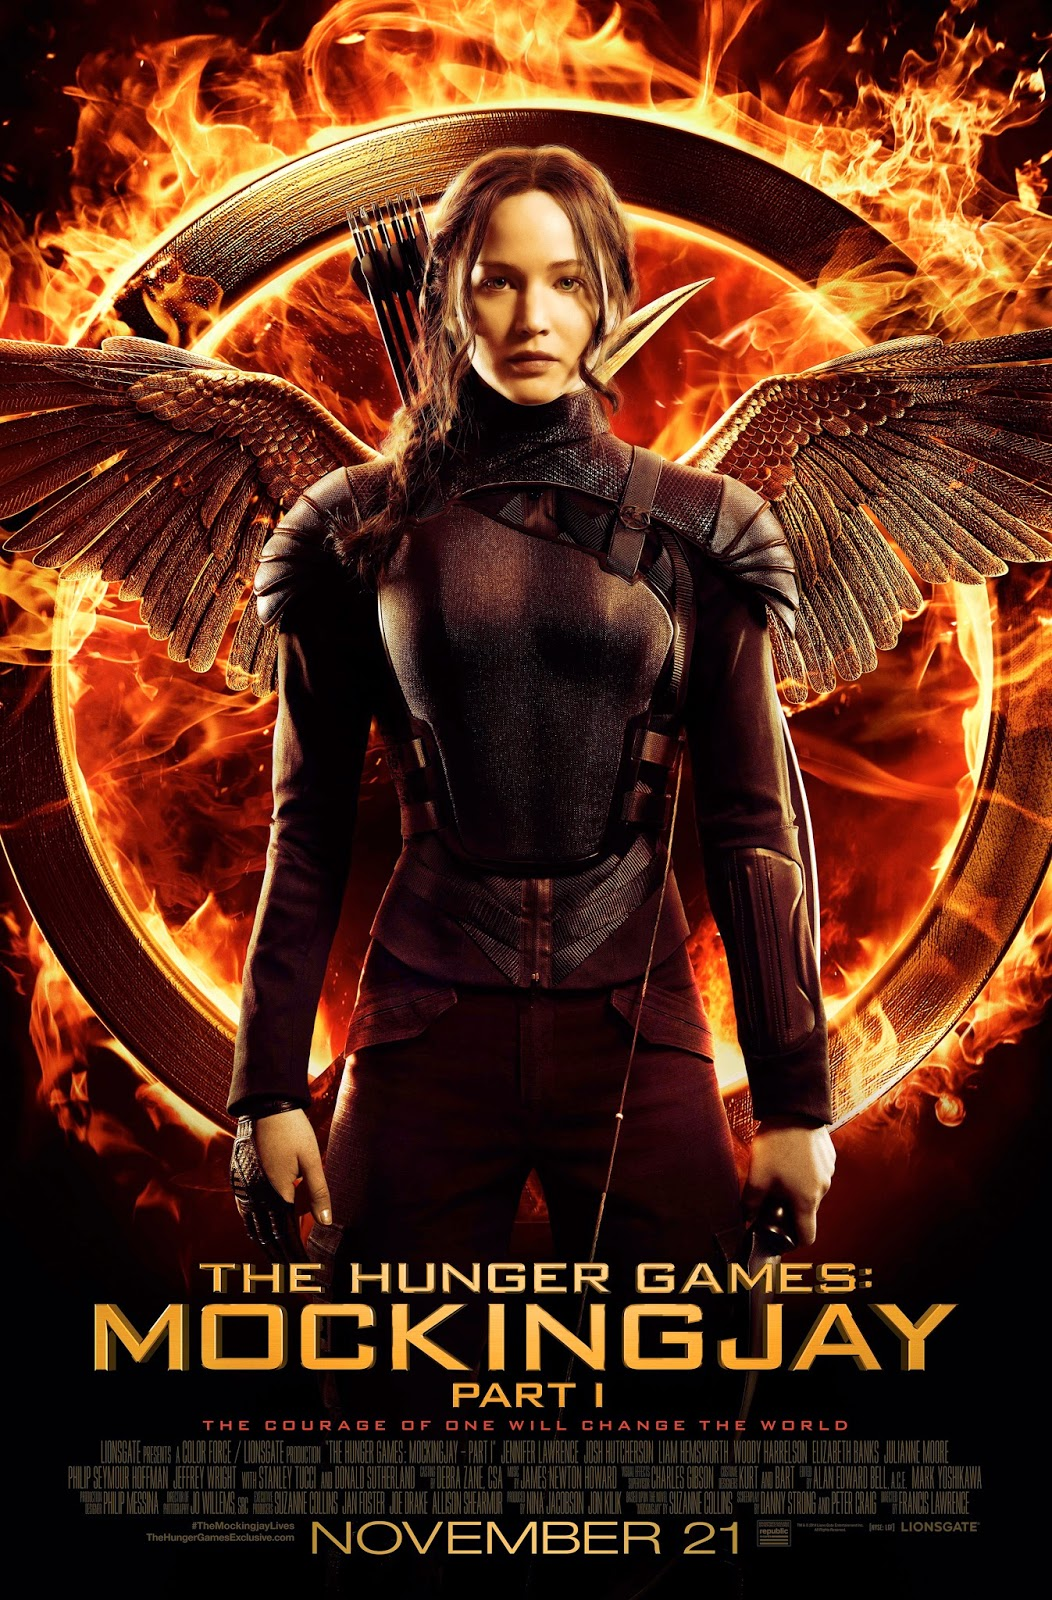 http://www.culture21century.gr/2014/11/the-hunger-games-1-hunger-games.html